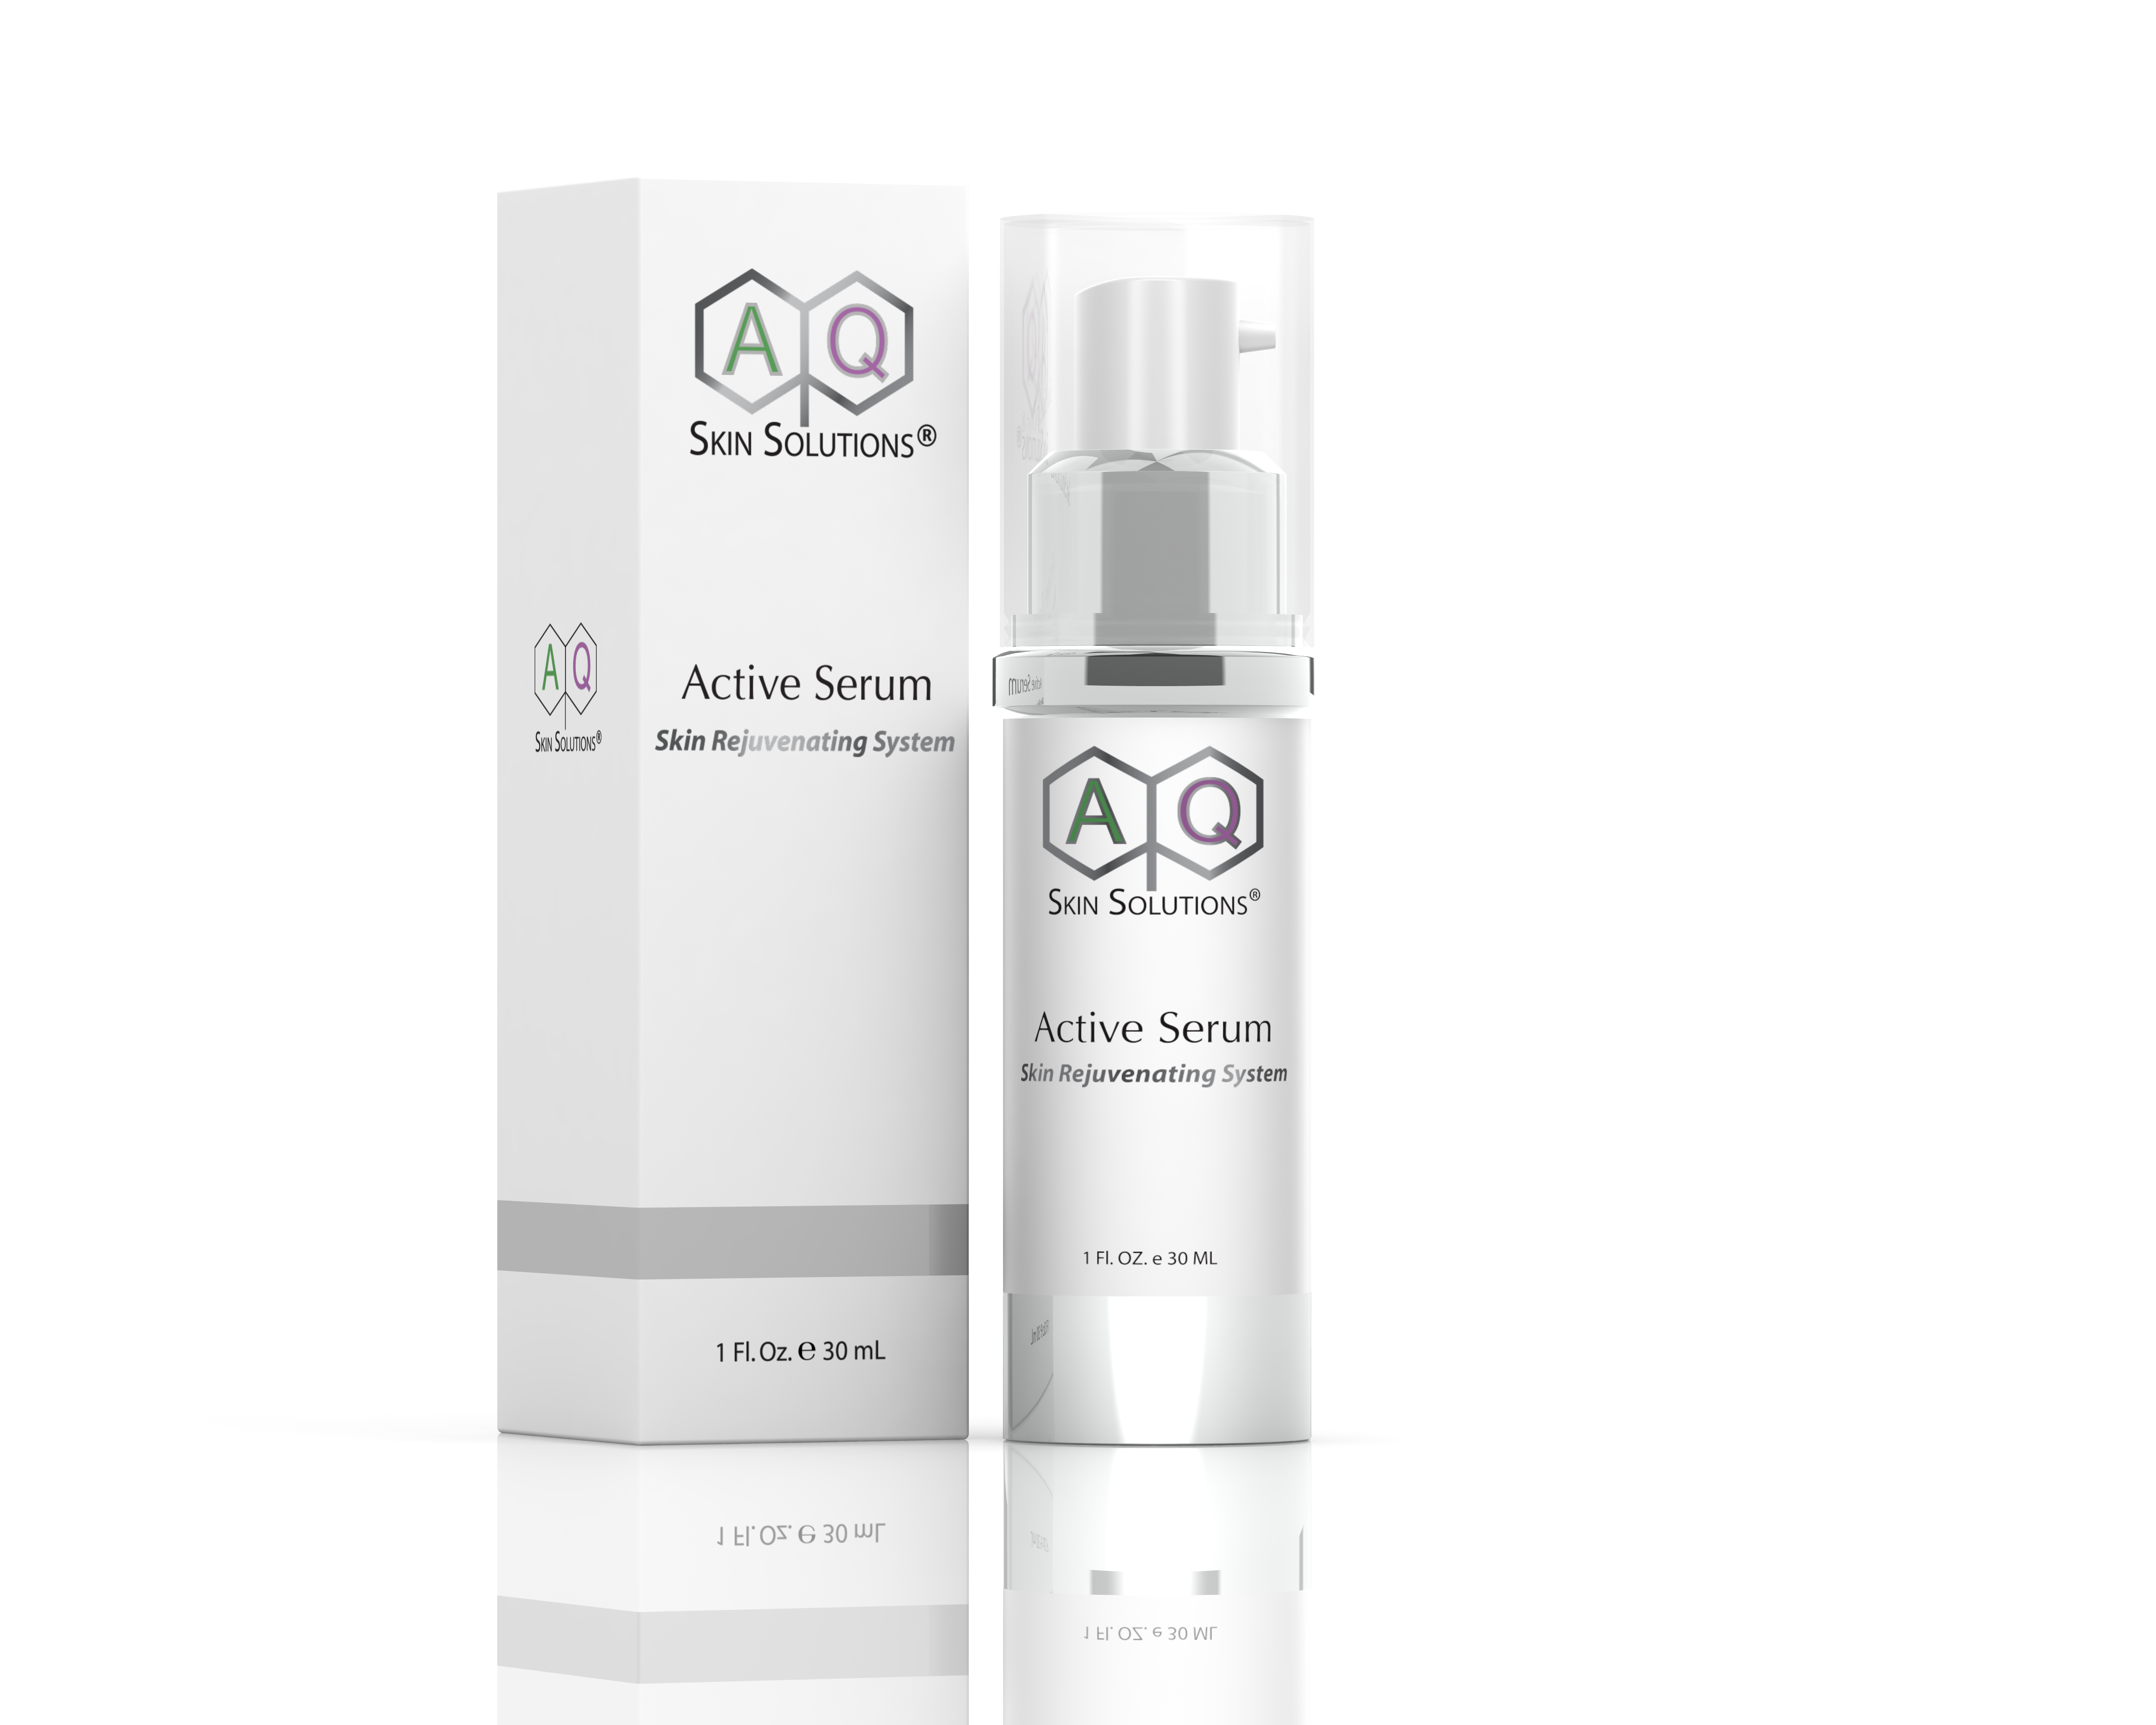 Derma Stamp Facial with AQ Skin Solutions Serum